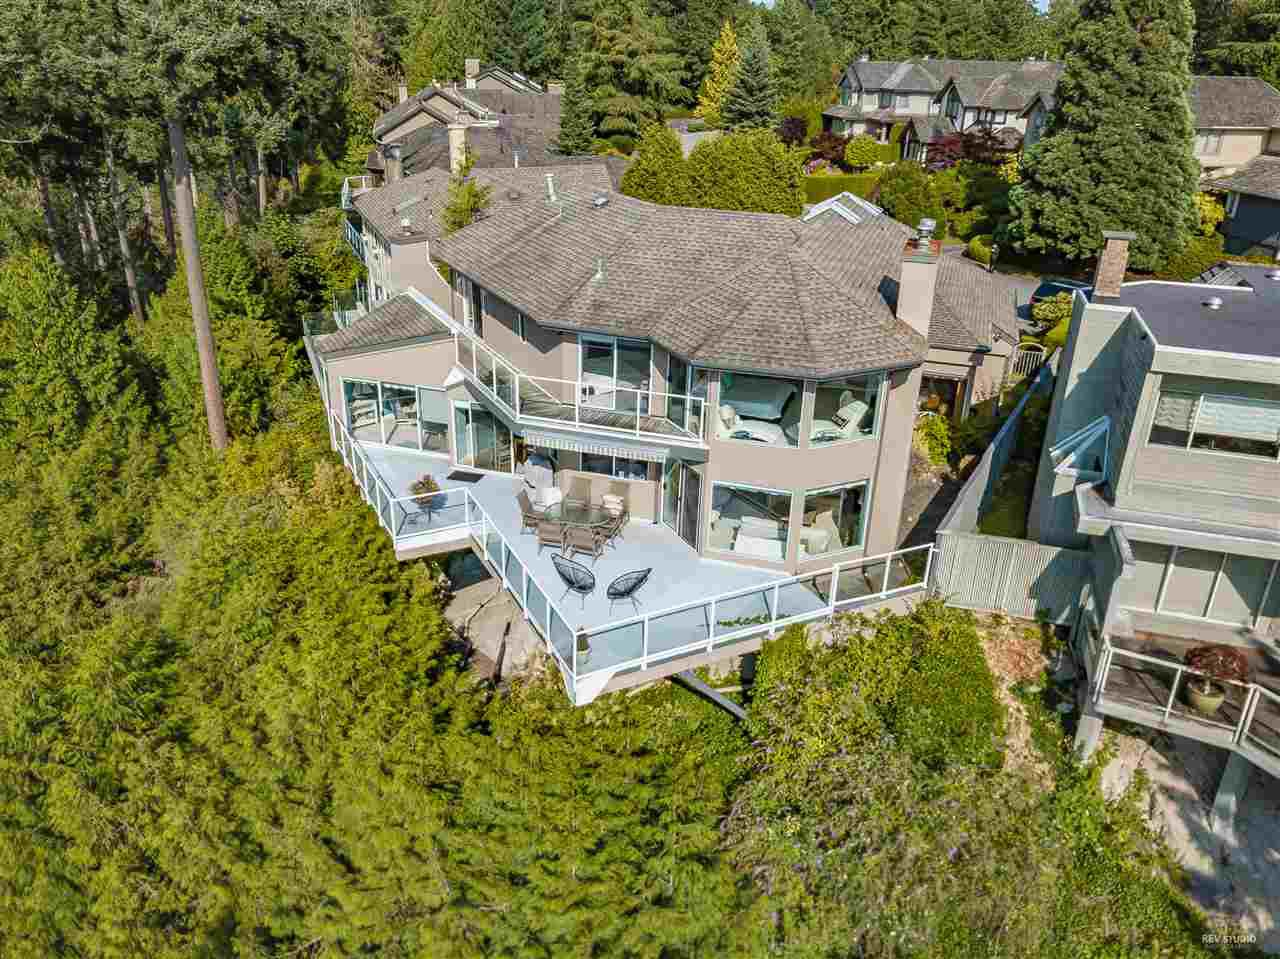 Photo 16: Photos: 5349 MONTE BRE CRESCENT in West Vancouver: Upper Caulfeild House for sale : MLS®# R2345408